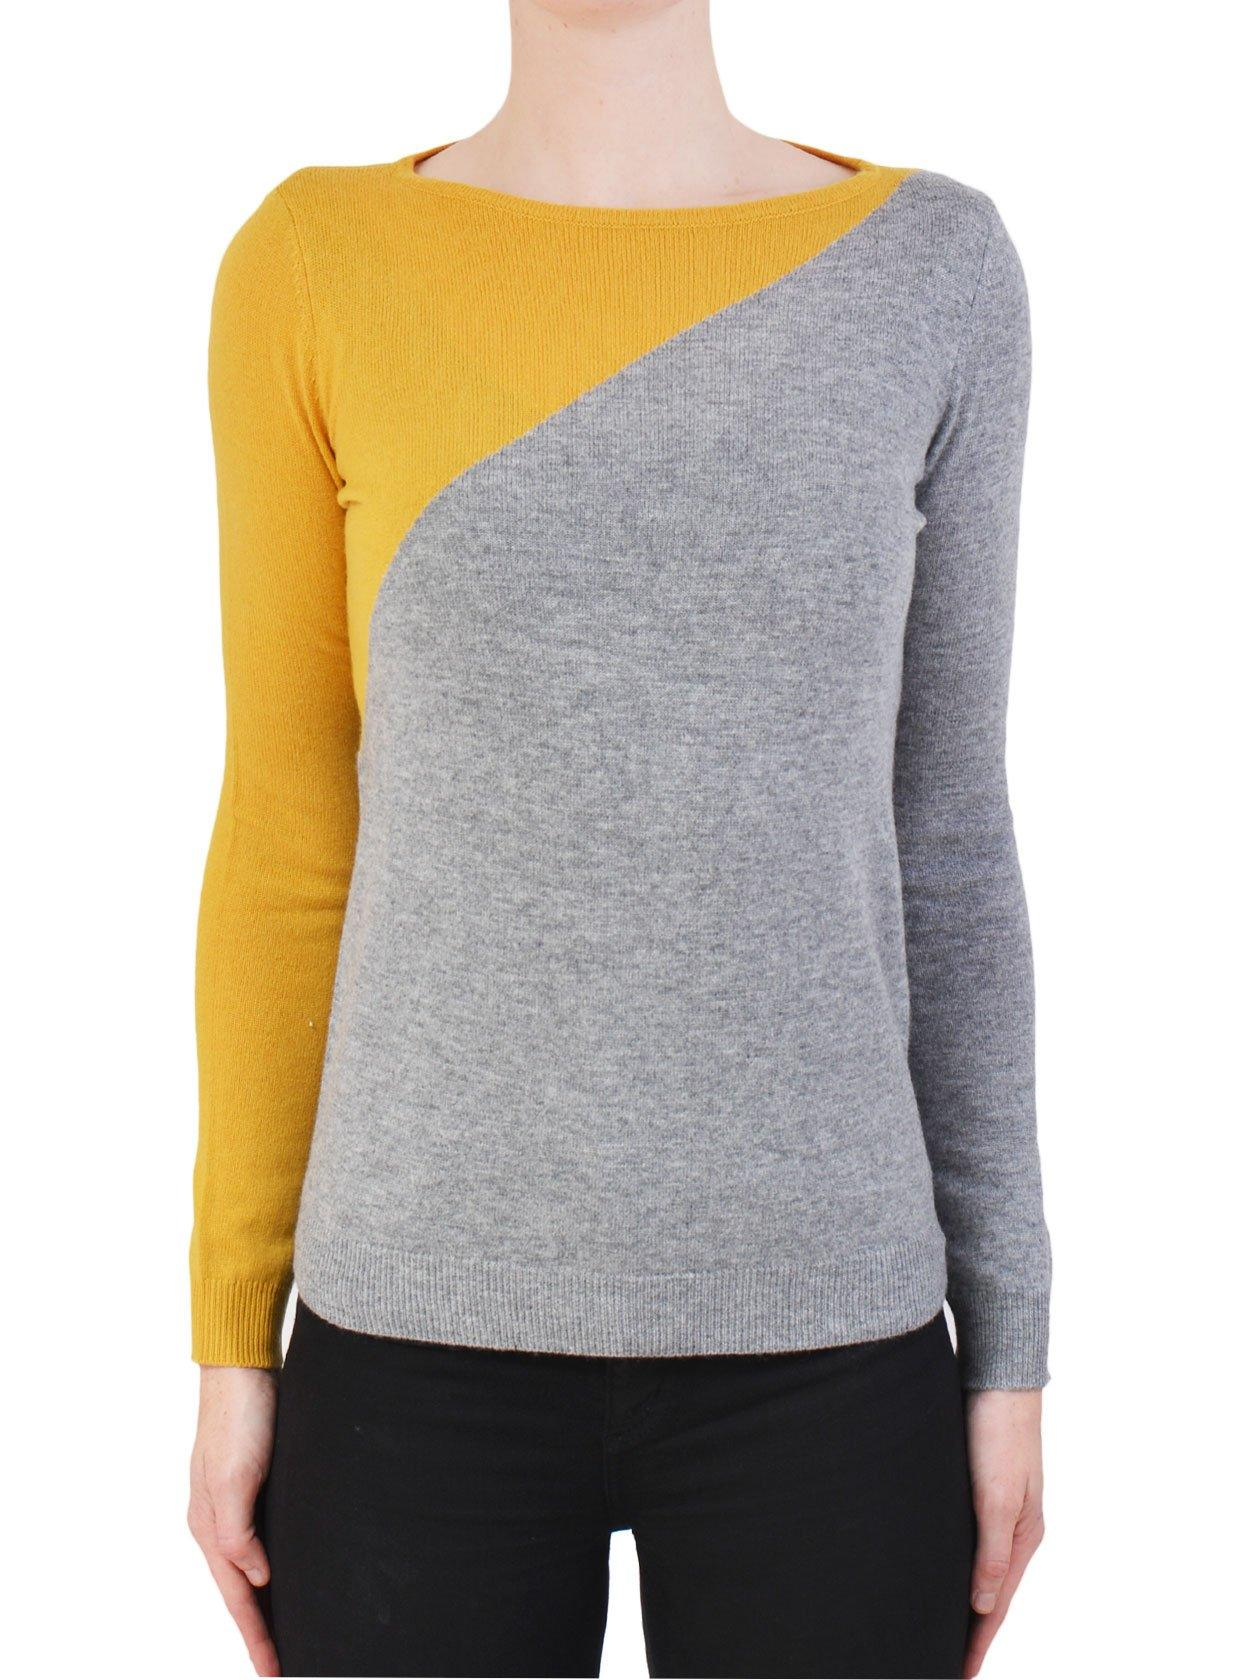 Yeltuor - JAMES MELBOURNE - Knitwear - JAMES MELBOURNE COLOUR BLOCK KNIT -  -